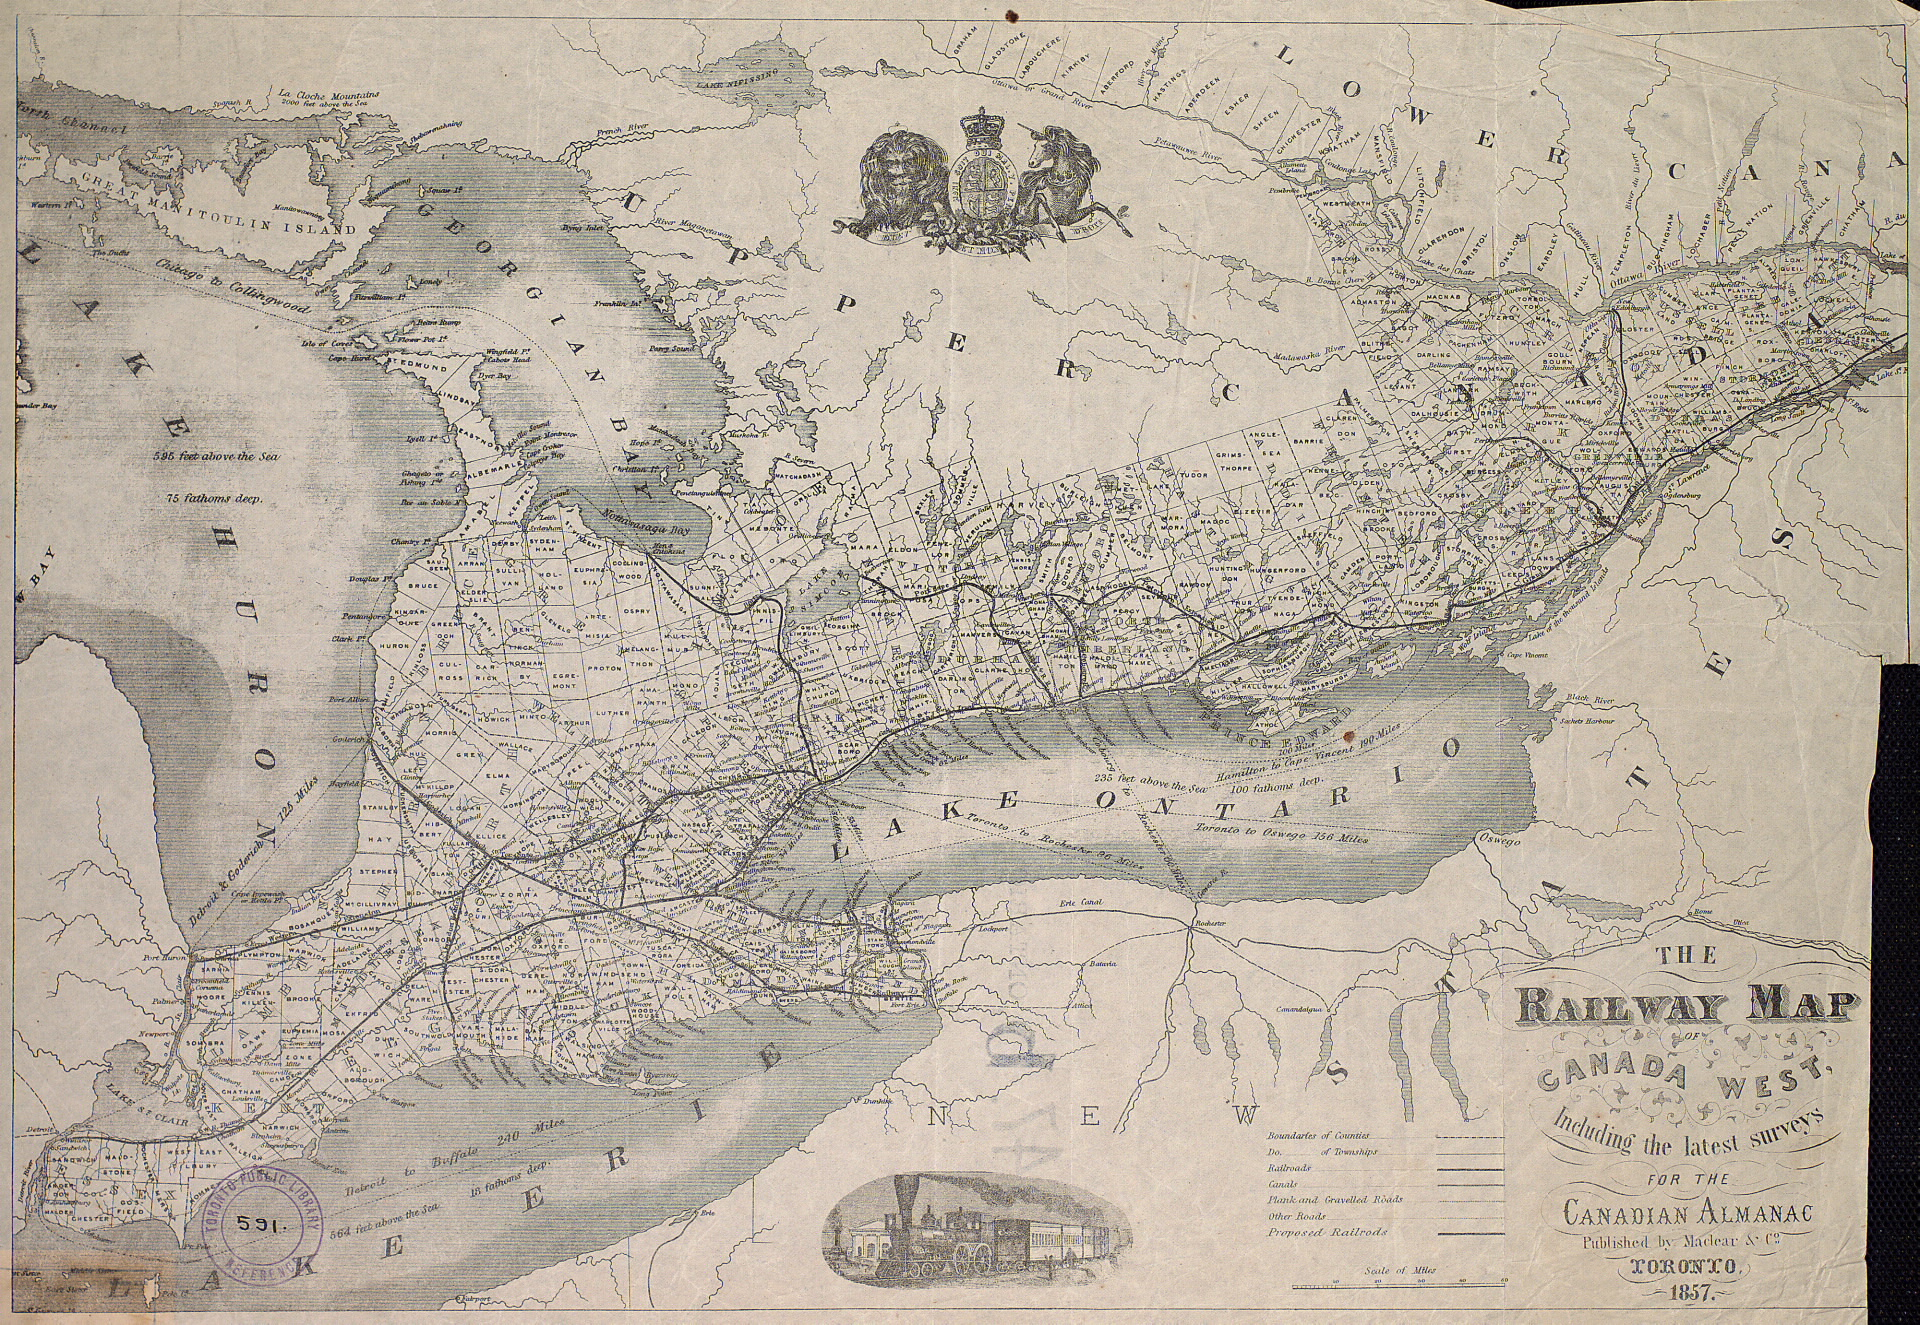 filethe railway map of canada west including the latest surveys for the canadian almanac